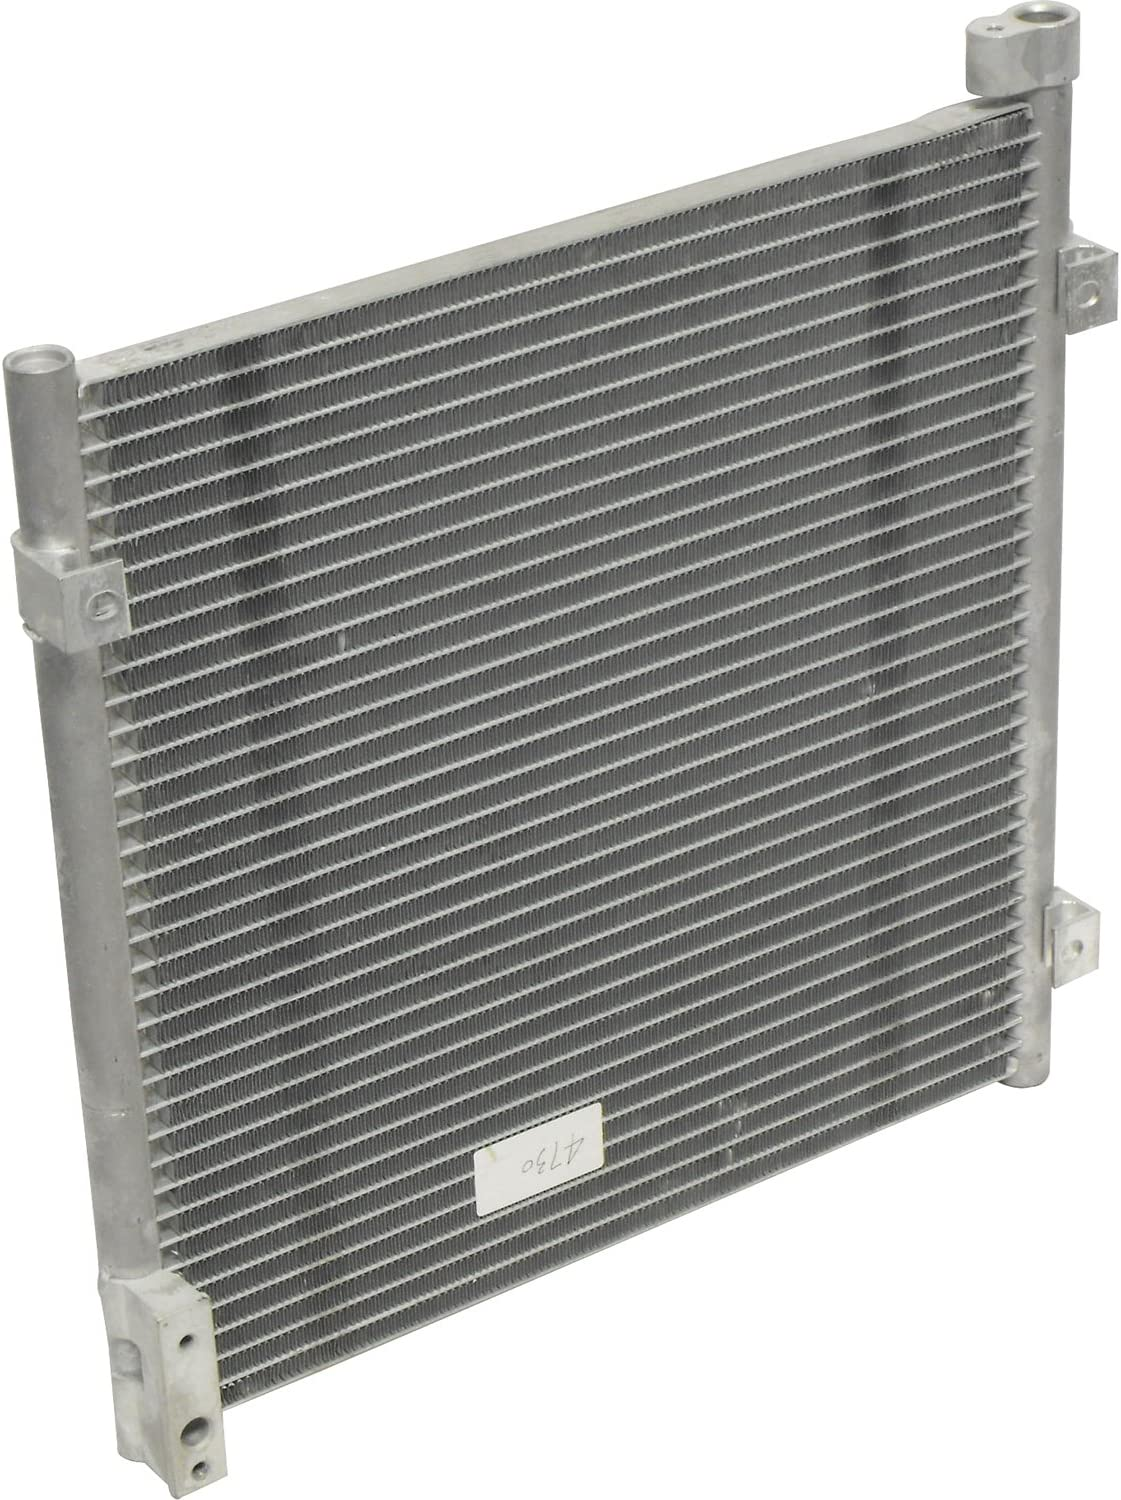 Chevy Hhr 2006-2010 Radiator A//C Condenser Cooling Fan